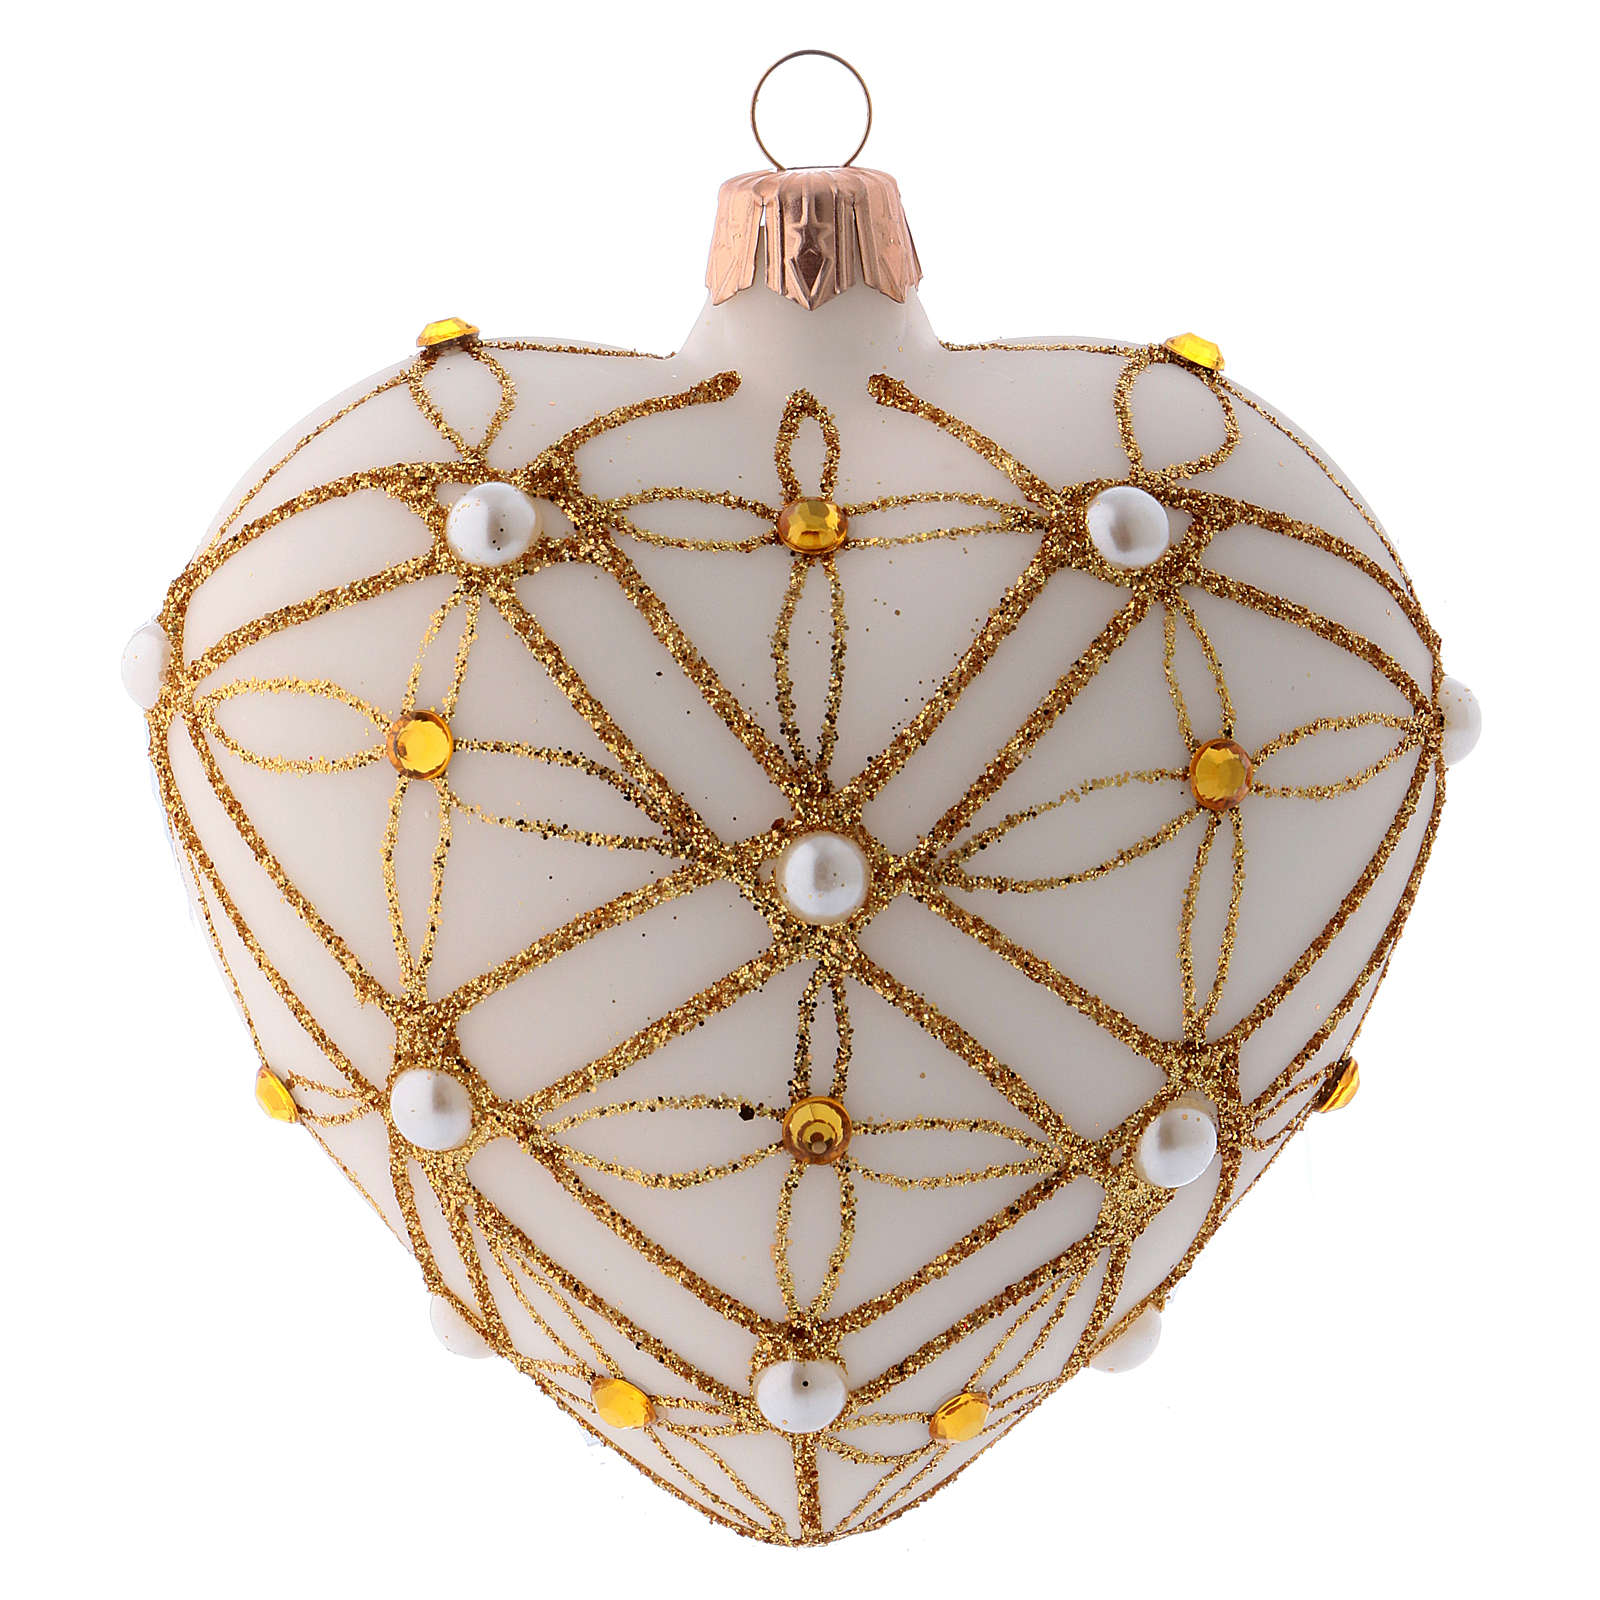 Heart Shaped Christmas bauble in ivory glass with red and gold decorations 100mm 4